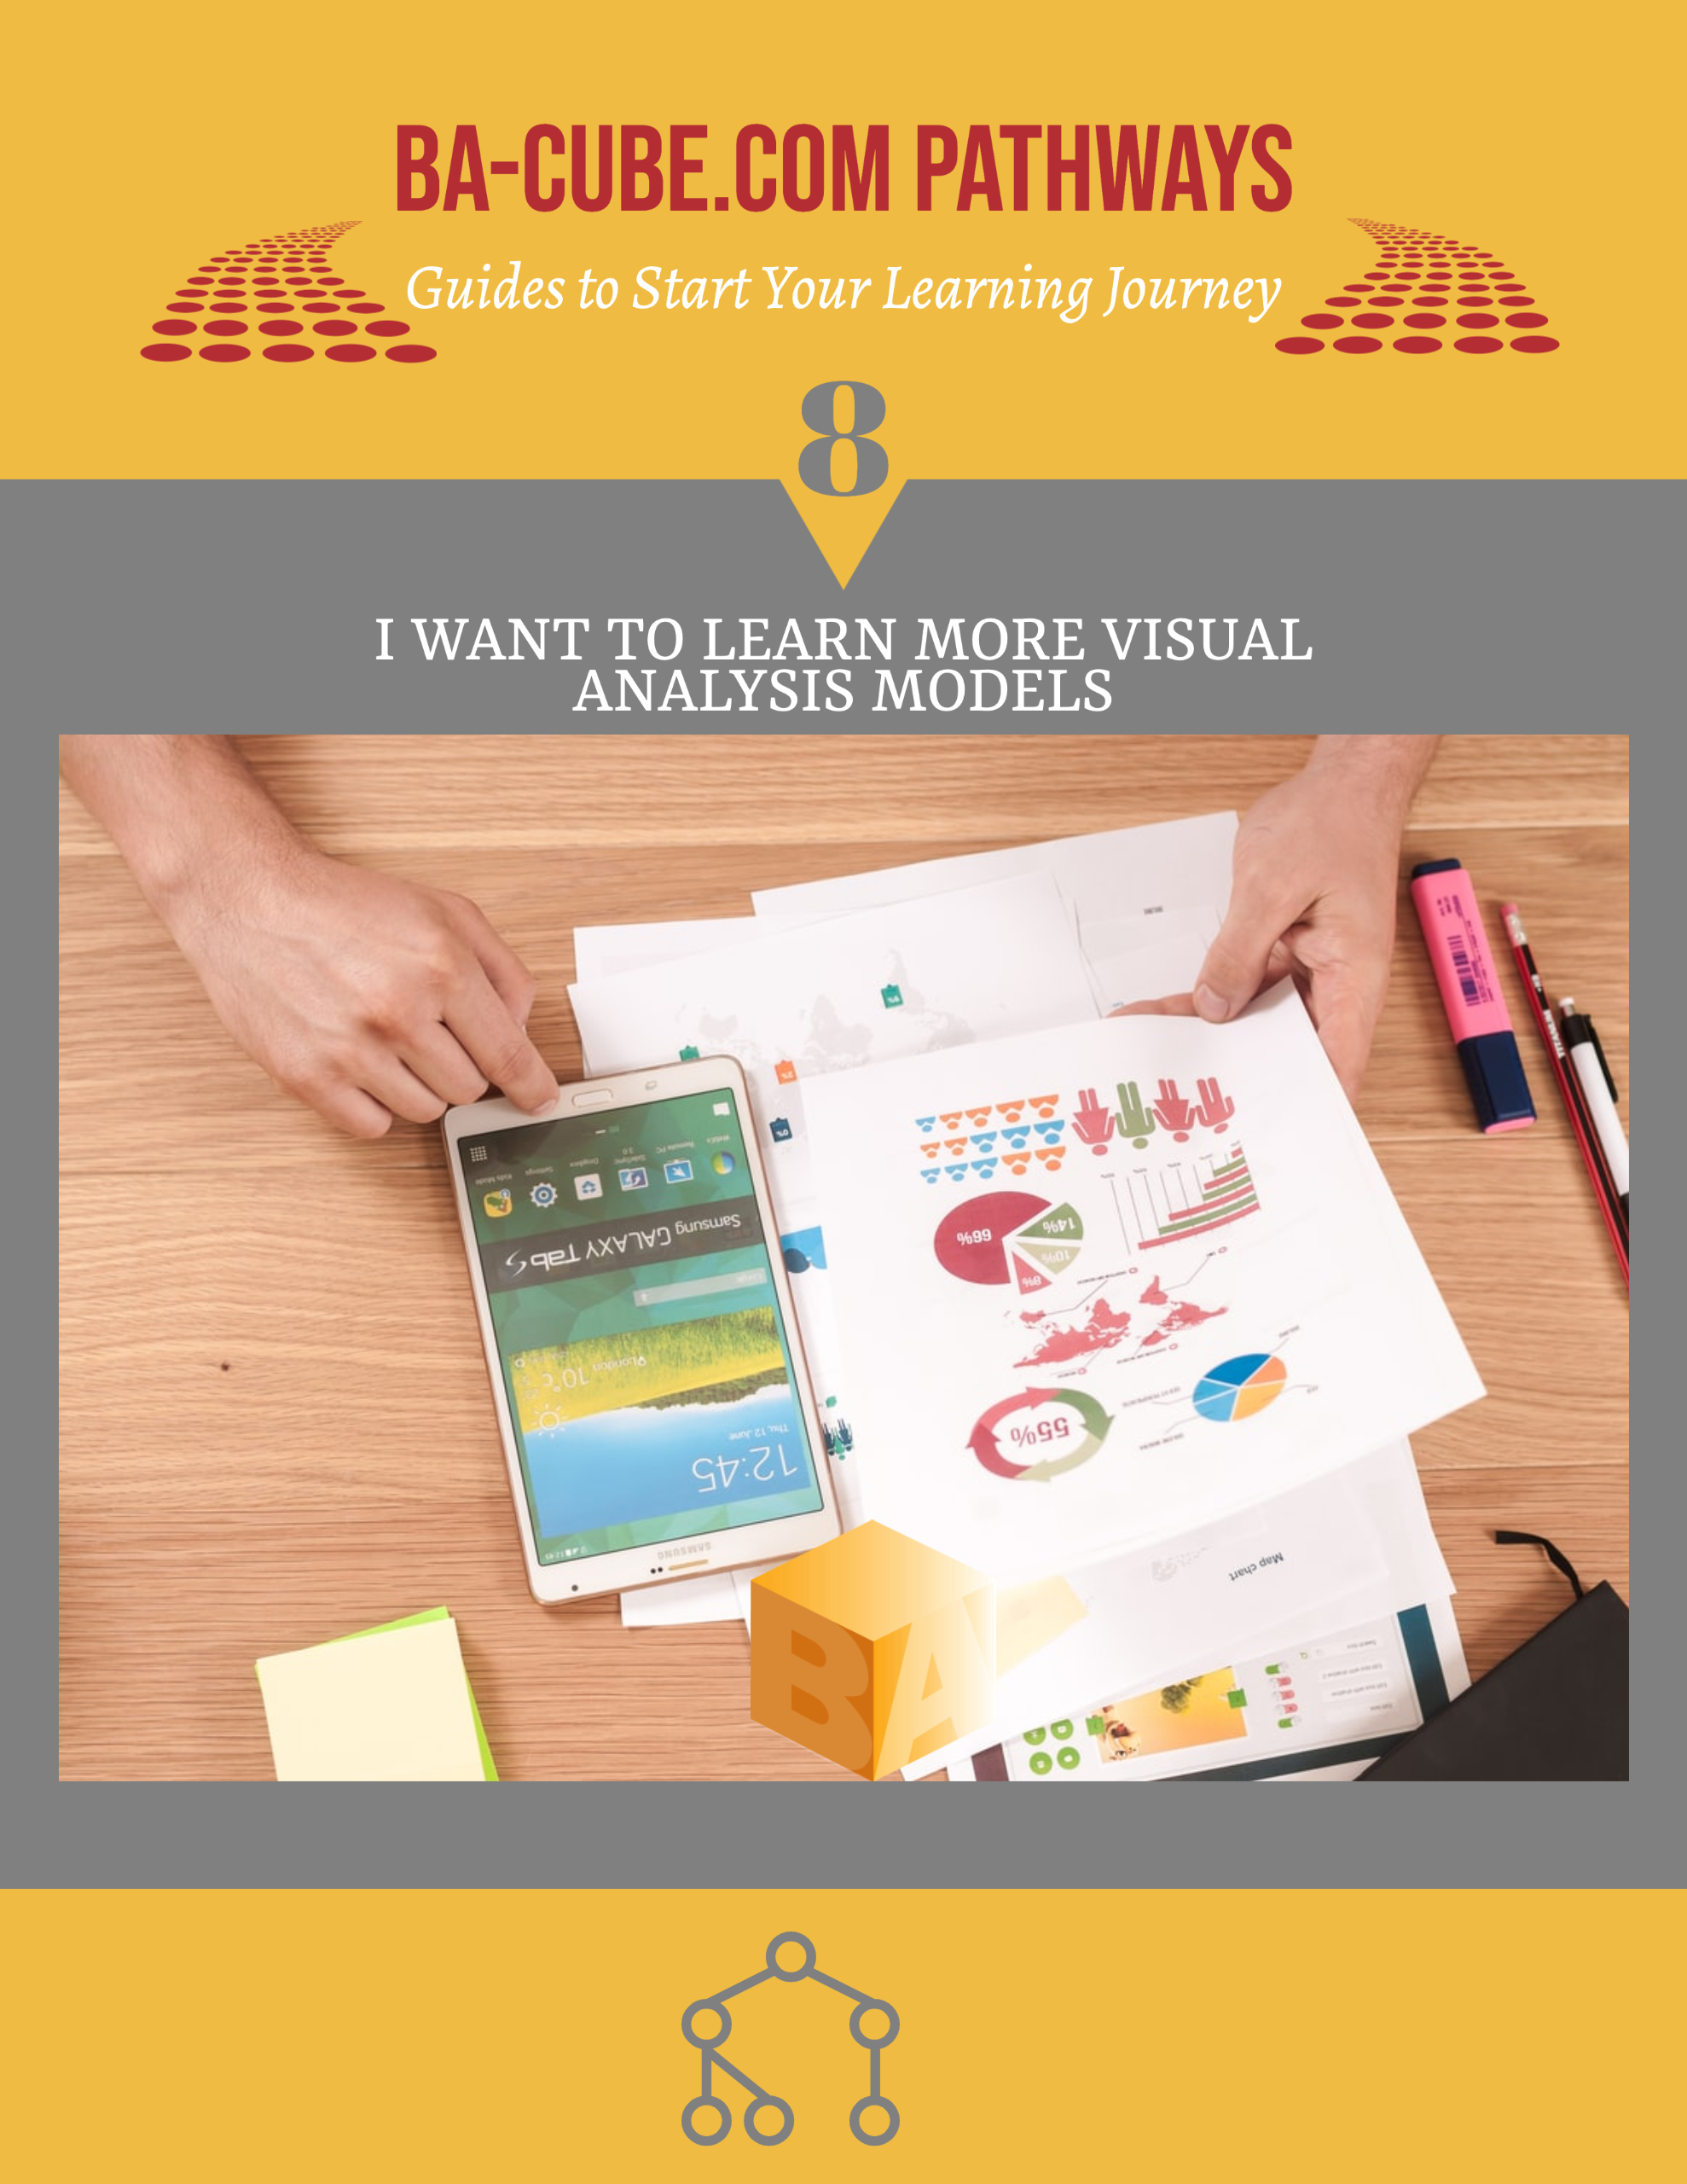 Pathway 8: I Want To Learn Visual Analysis Models